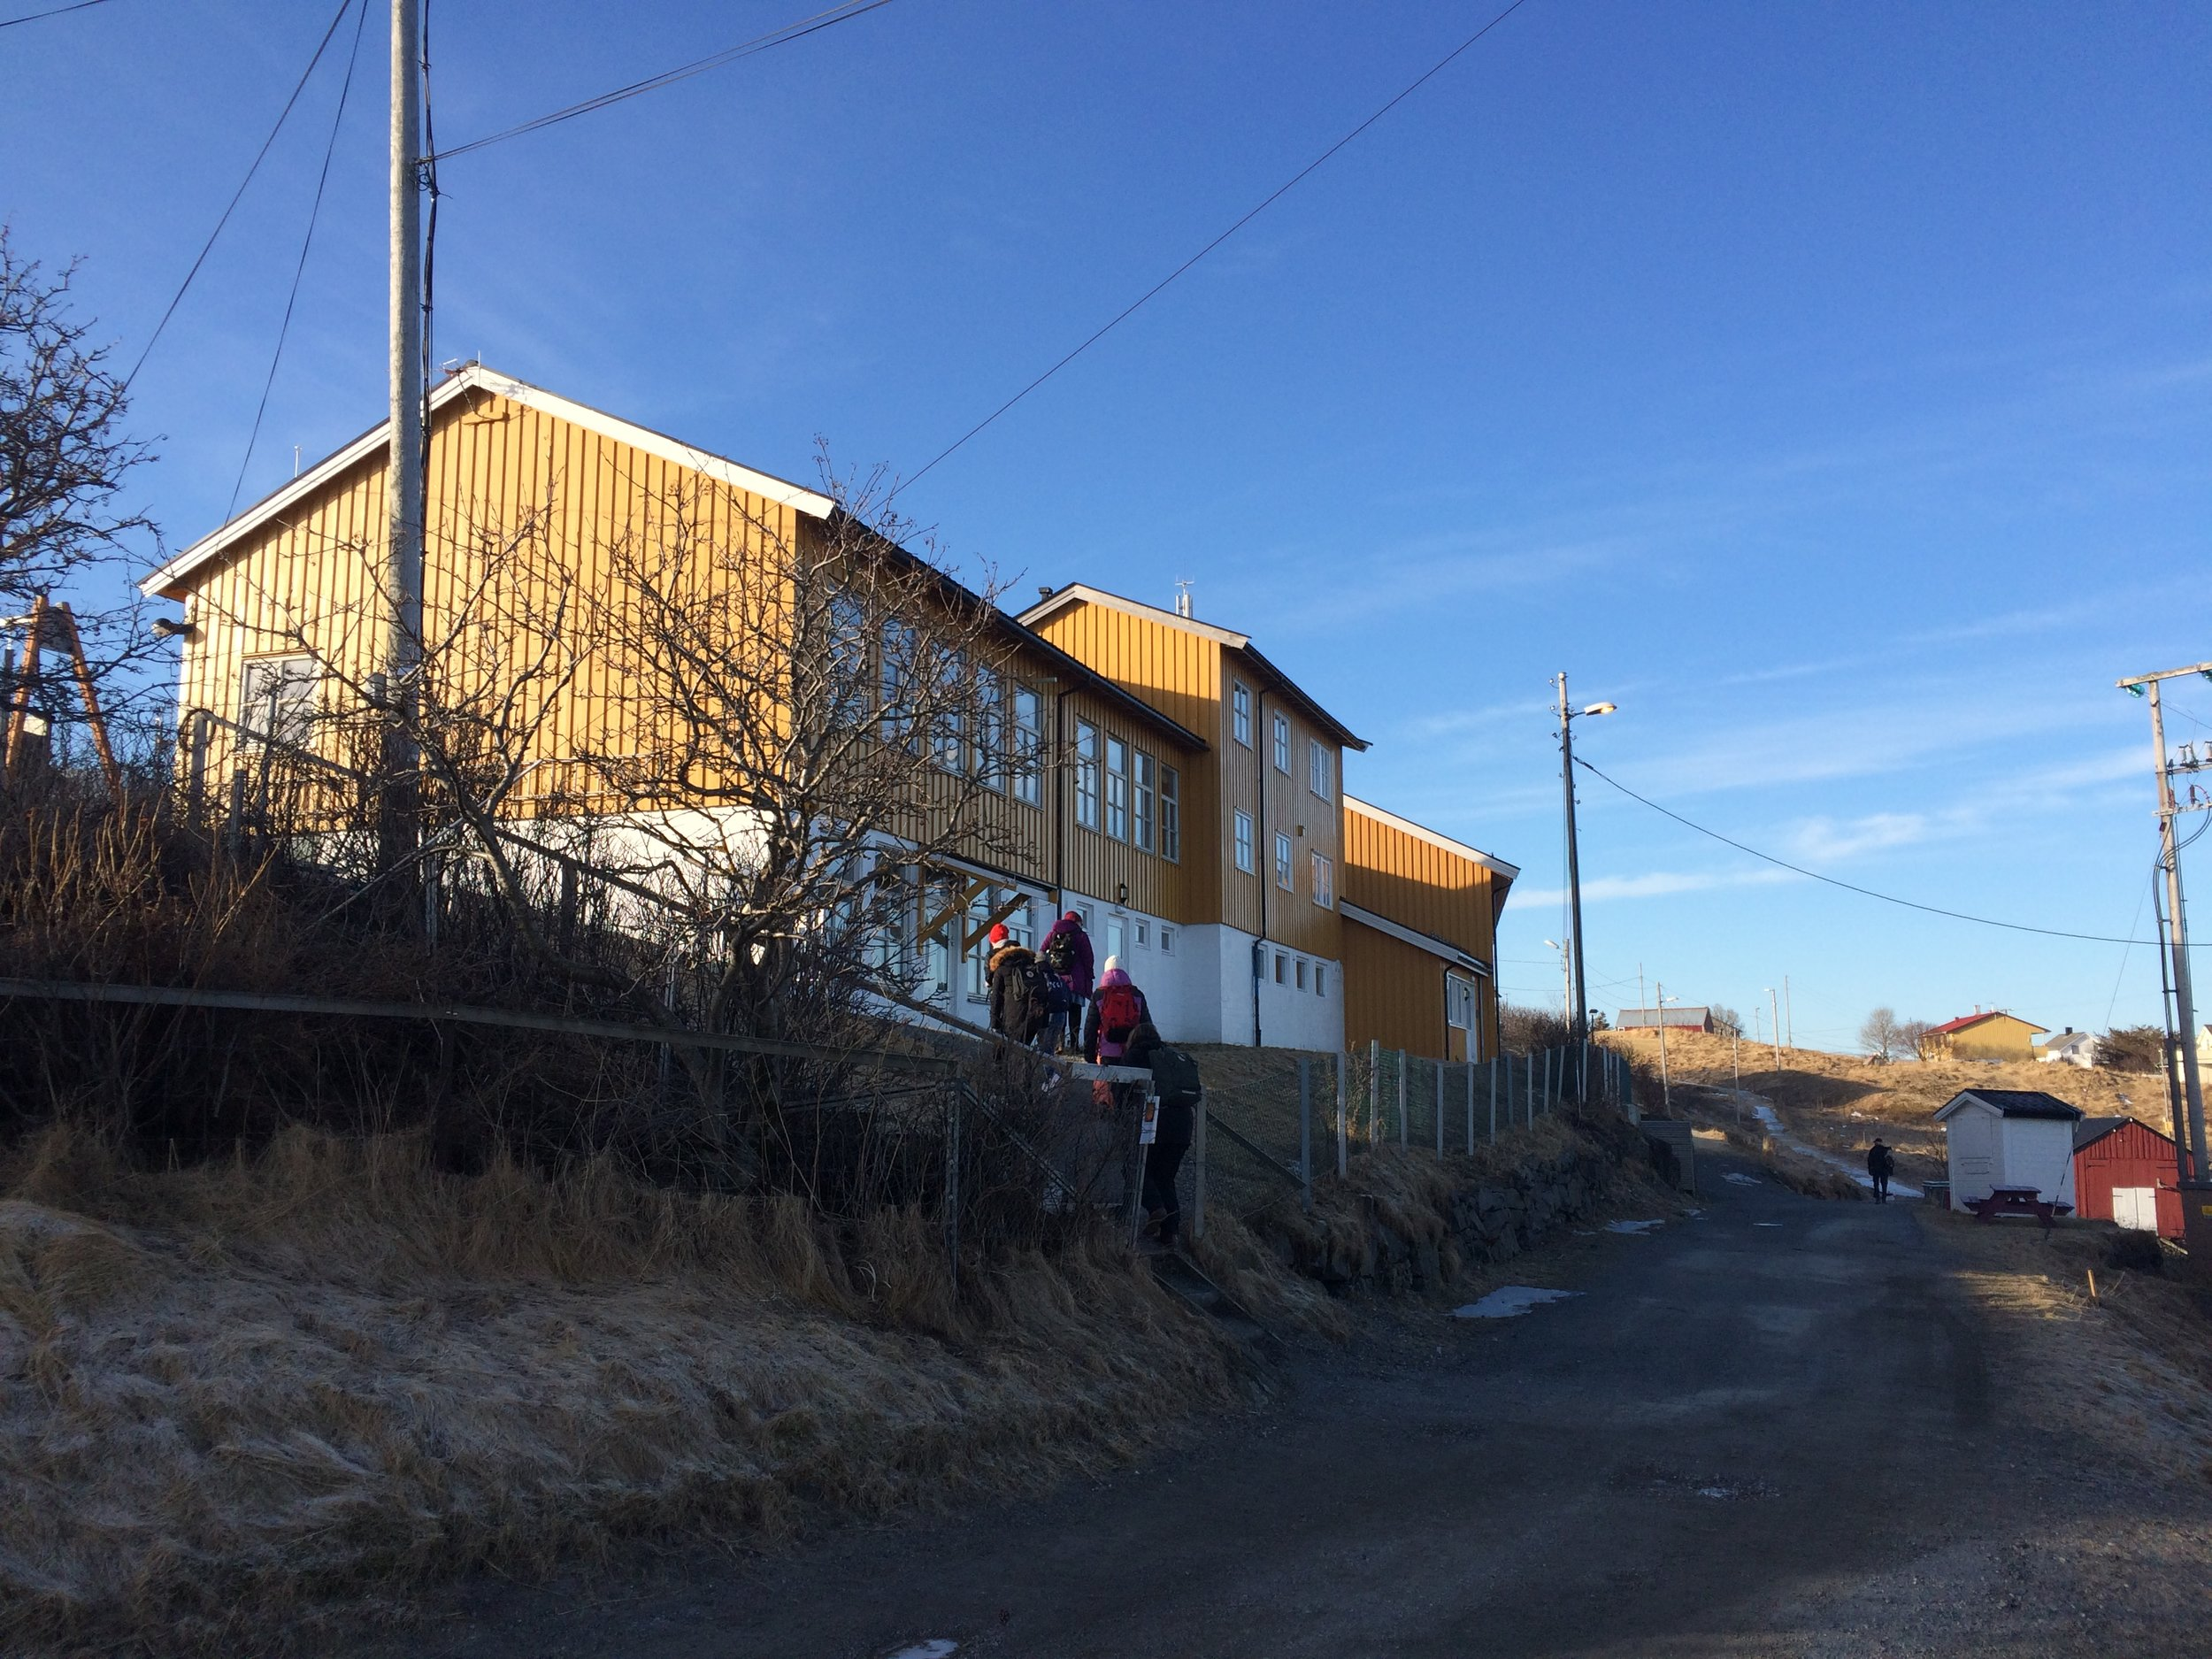 The school on Helligvær provides an education for anywhere from 10-20 pupils, ranging in age from kindergarten to 10th grade, depending on the year. Currently, the entire island has a population of 90. There are four teachers and one principal at this school. The island has a grocery store that is open from 3:30-5:00, five days a week. Two mothers share the job of running the shop, and almost all of the fathers work on boats in some capacity. There is also a post office and a gas station, however the fuel is mostly sold to run farm equipment, as there are only four cars on the entire island!